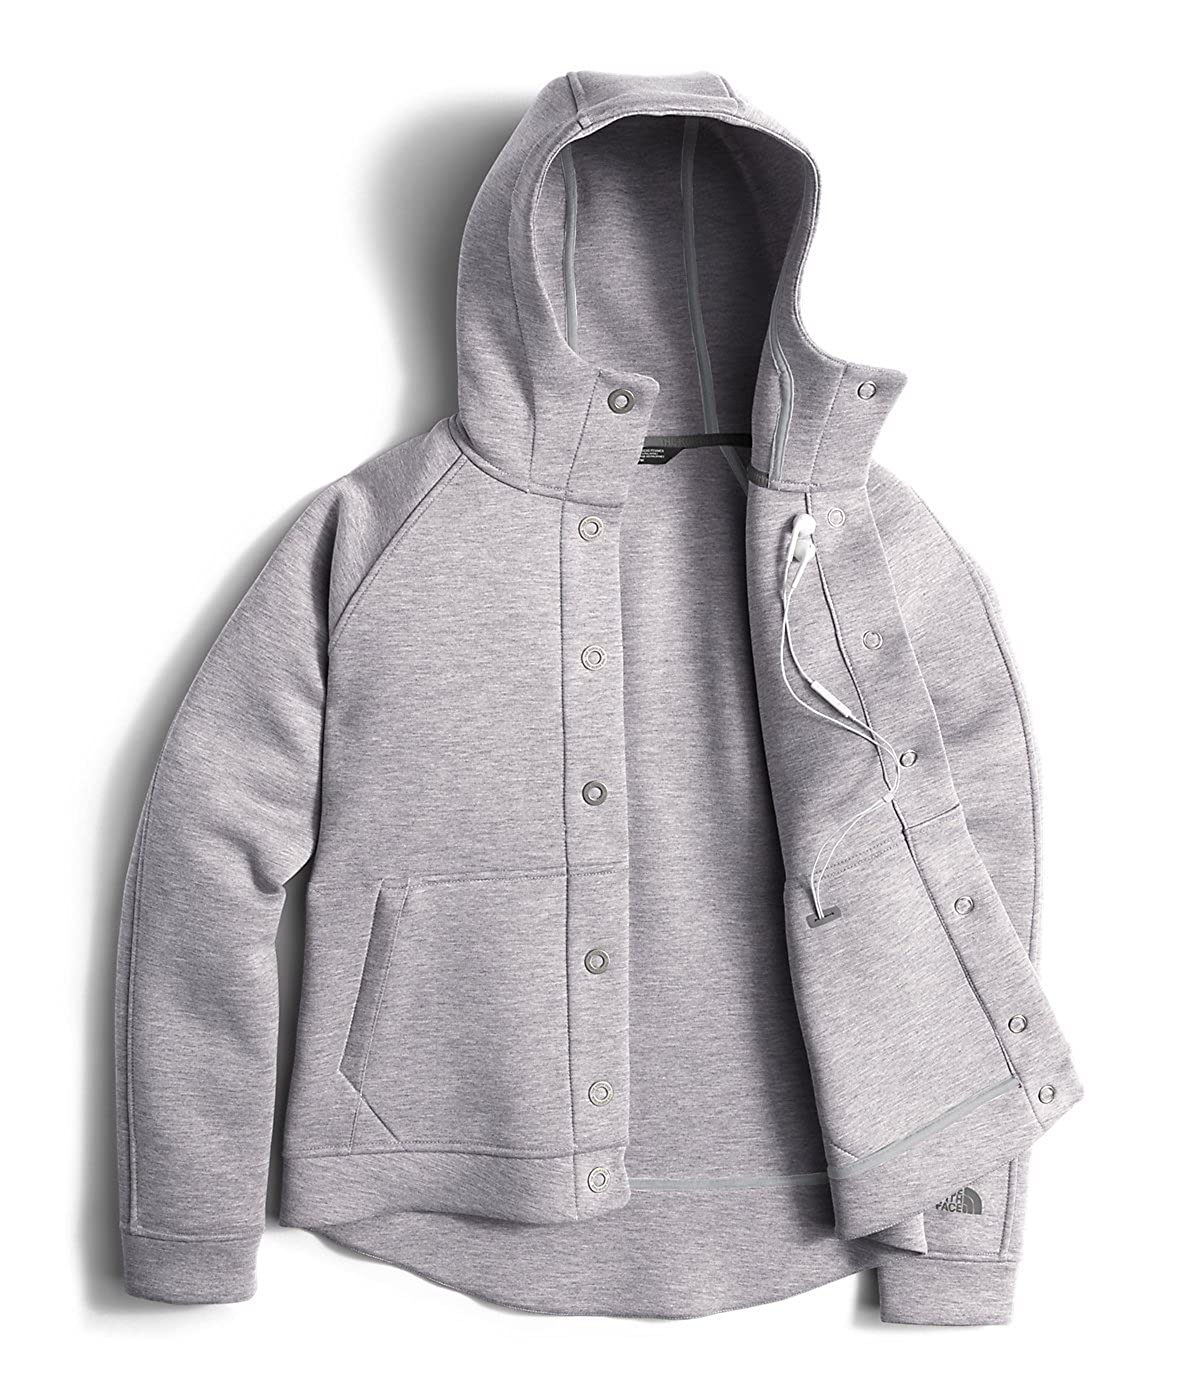 0167c464b The North Face Thermal 3D Snap Hoodie Light Grey Heather